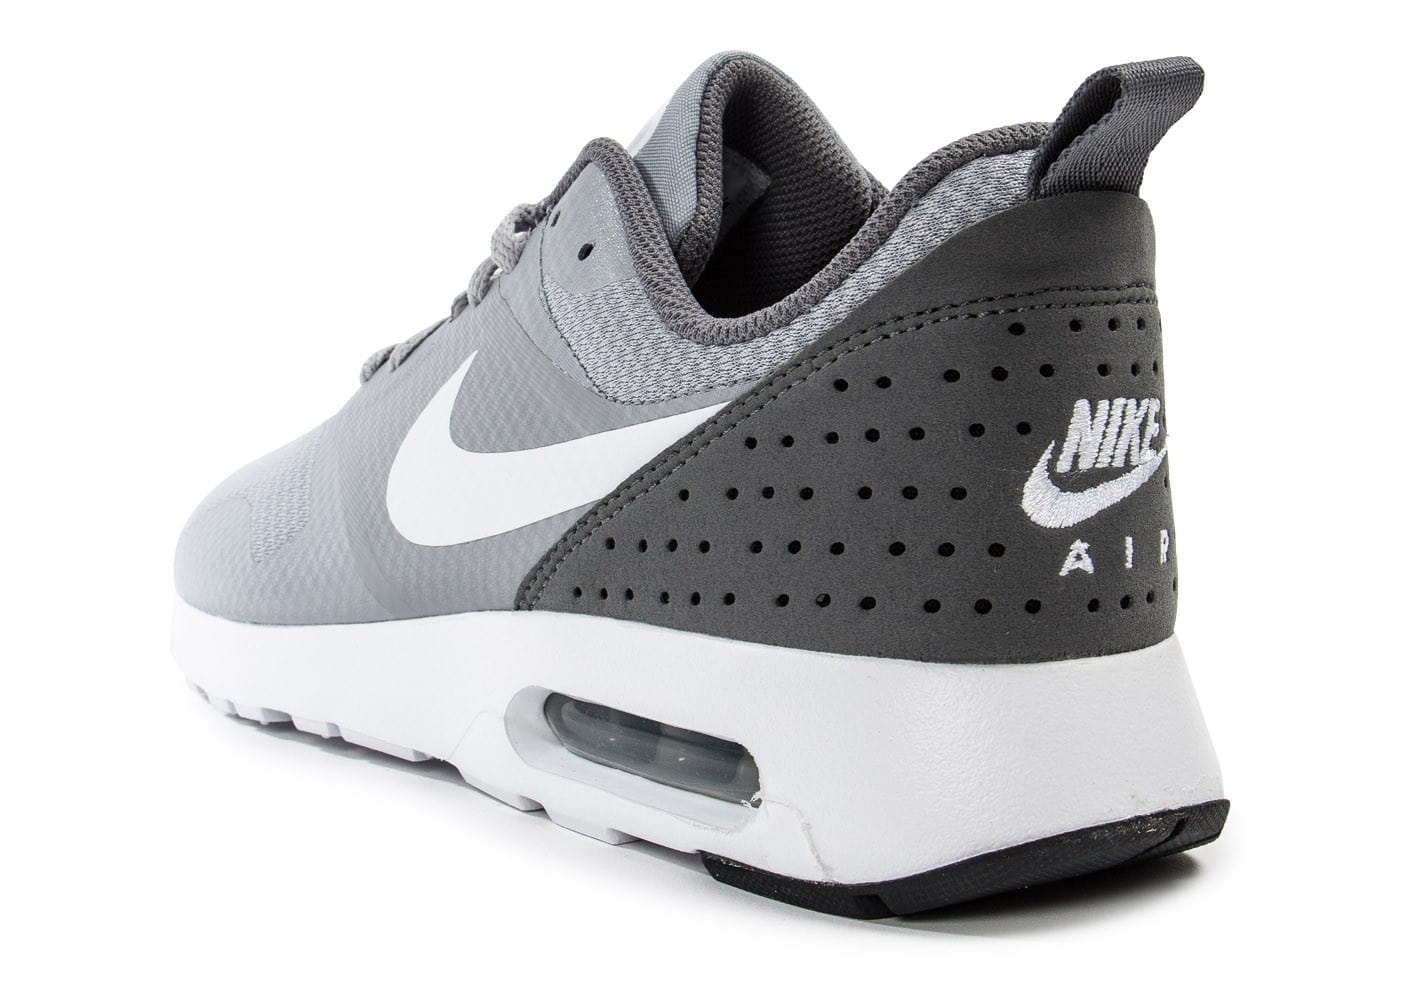 new style 1b8f9 183f0 Nike Chaussures Baskets Tavas Max Chausport grise homme Air zIzxO